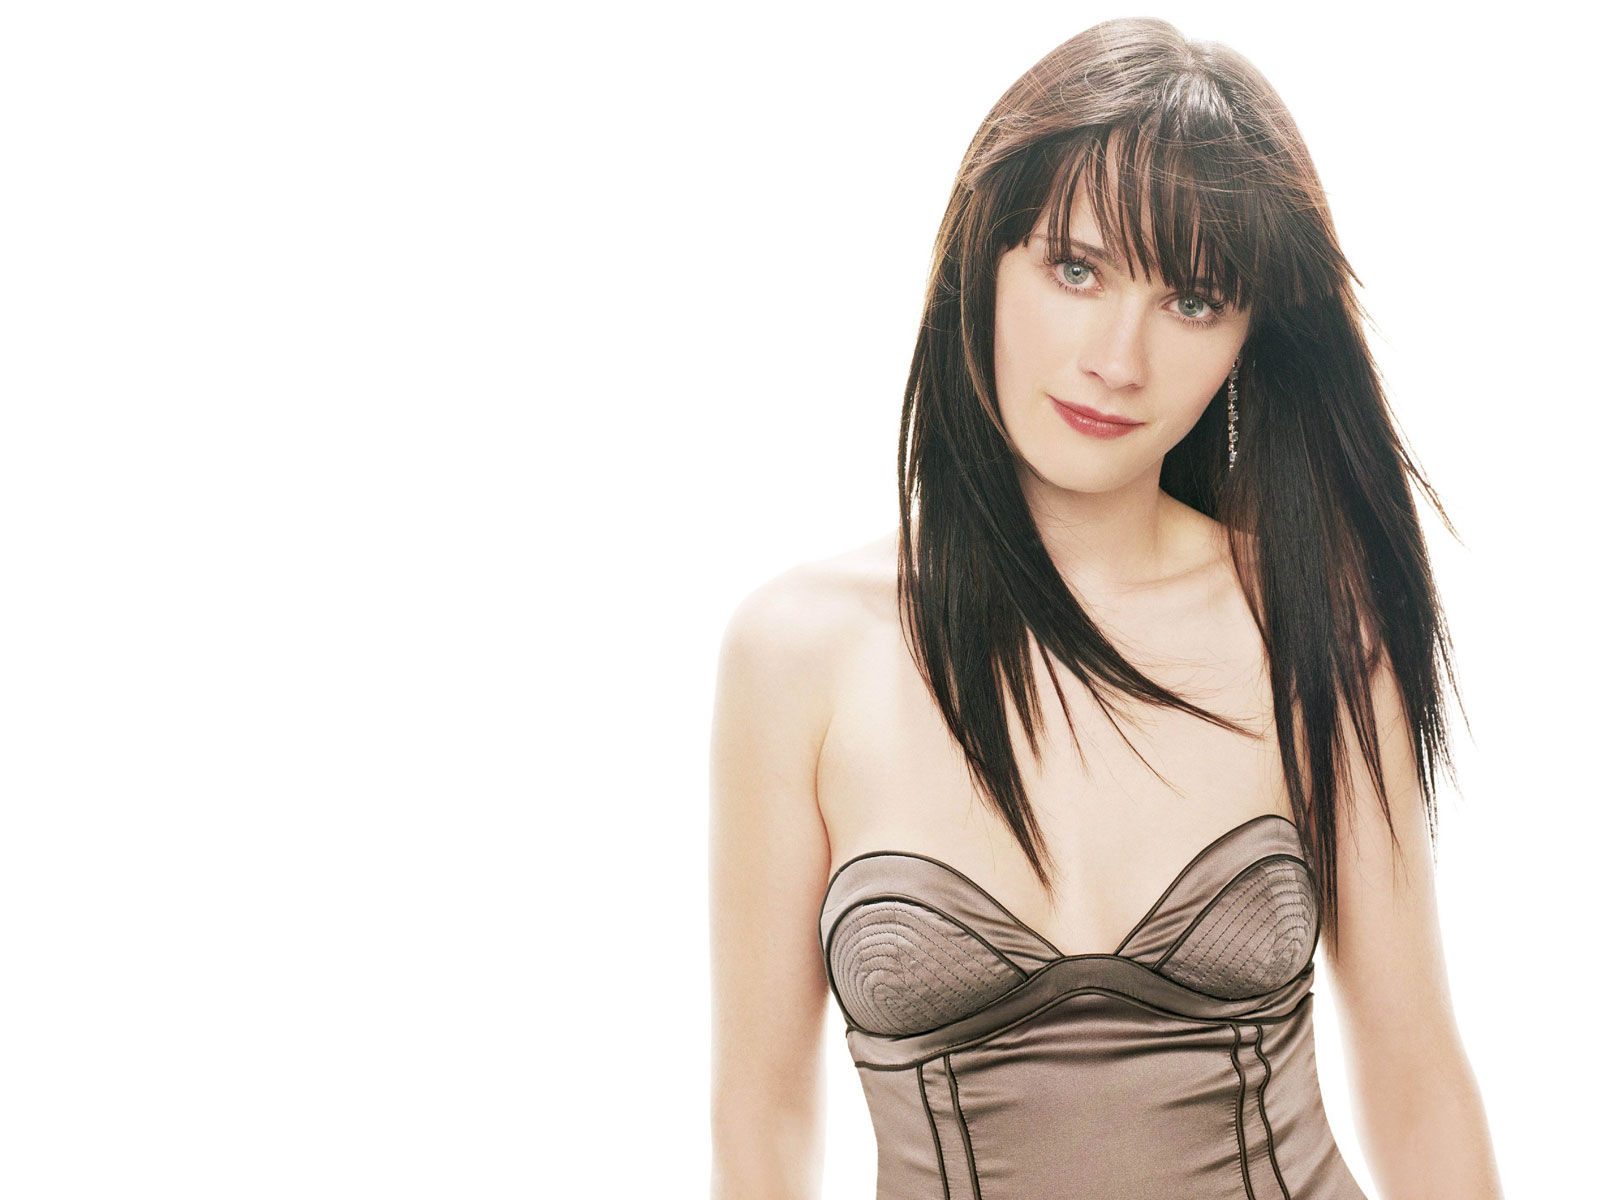 Wallpaperstopick Zooey Deschanel